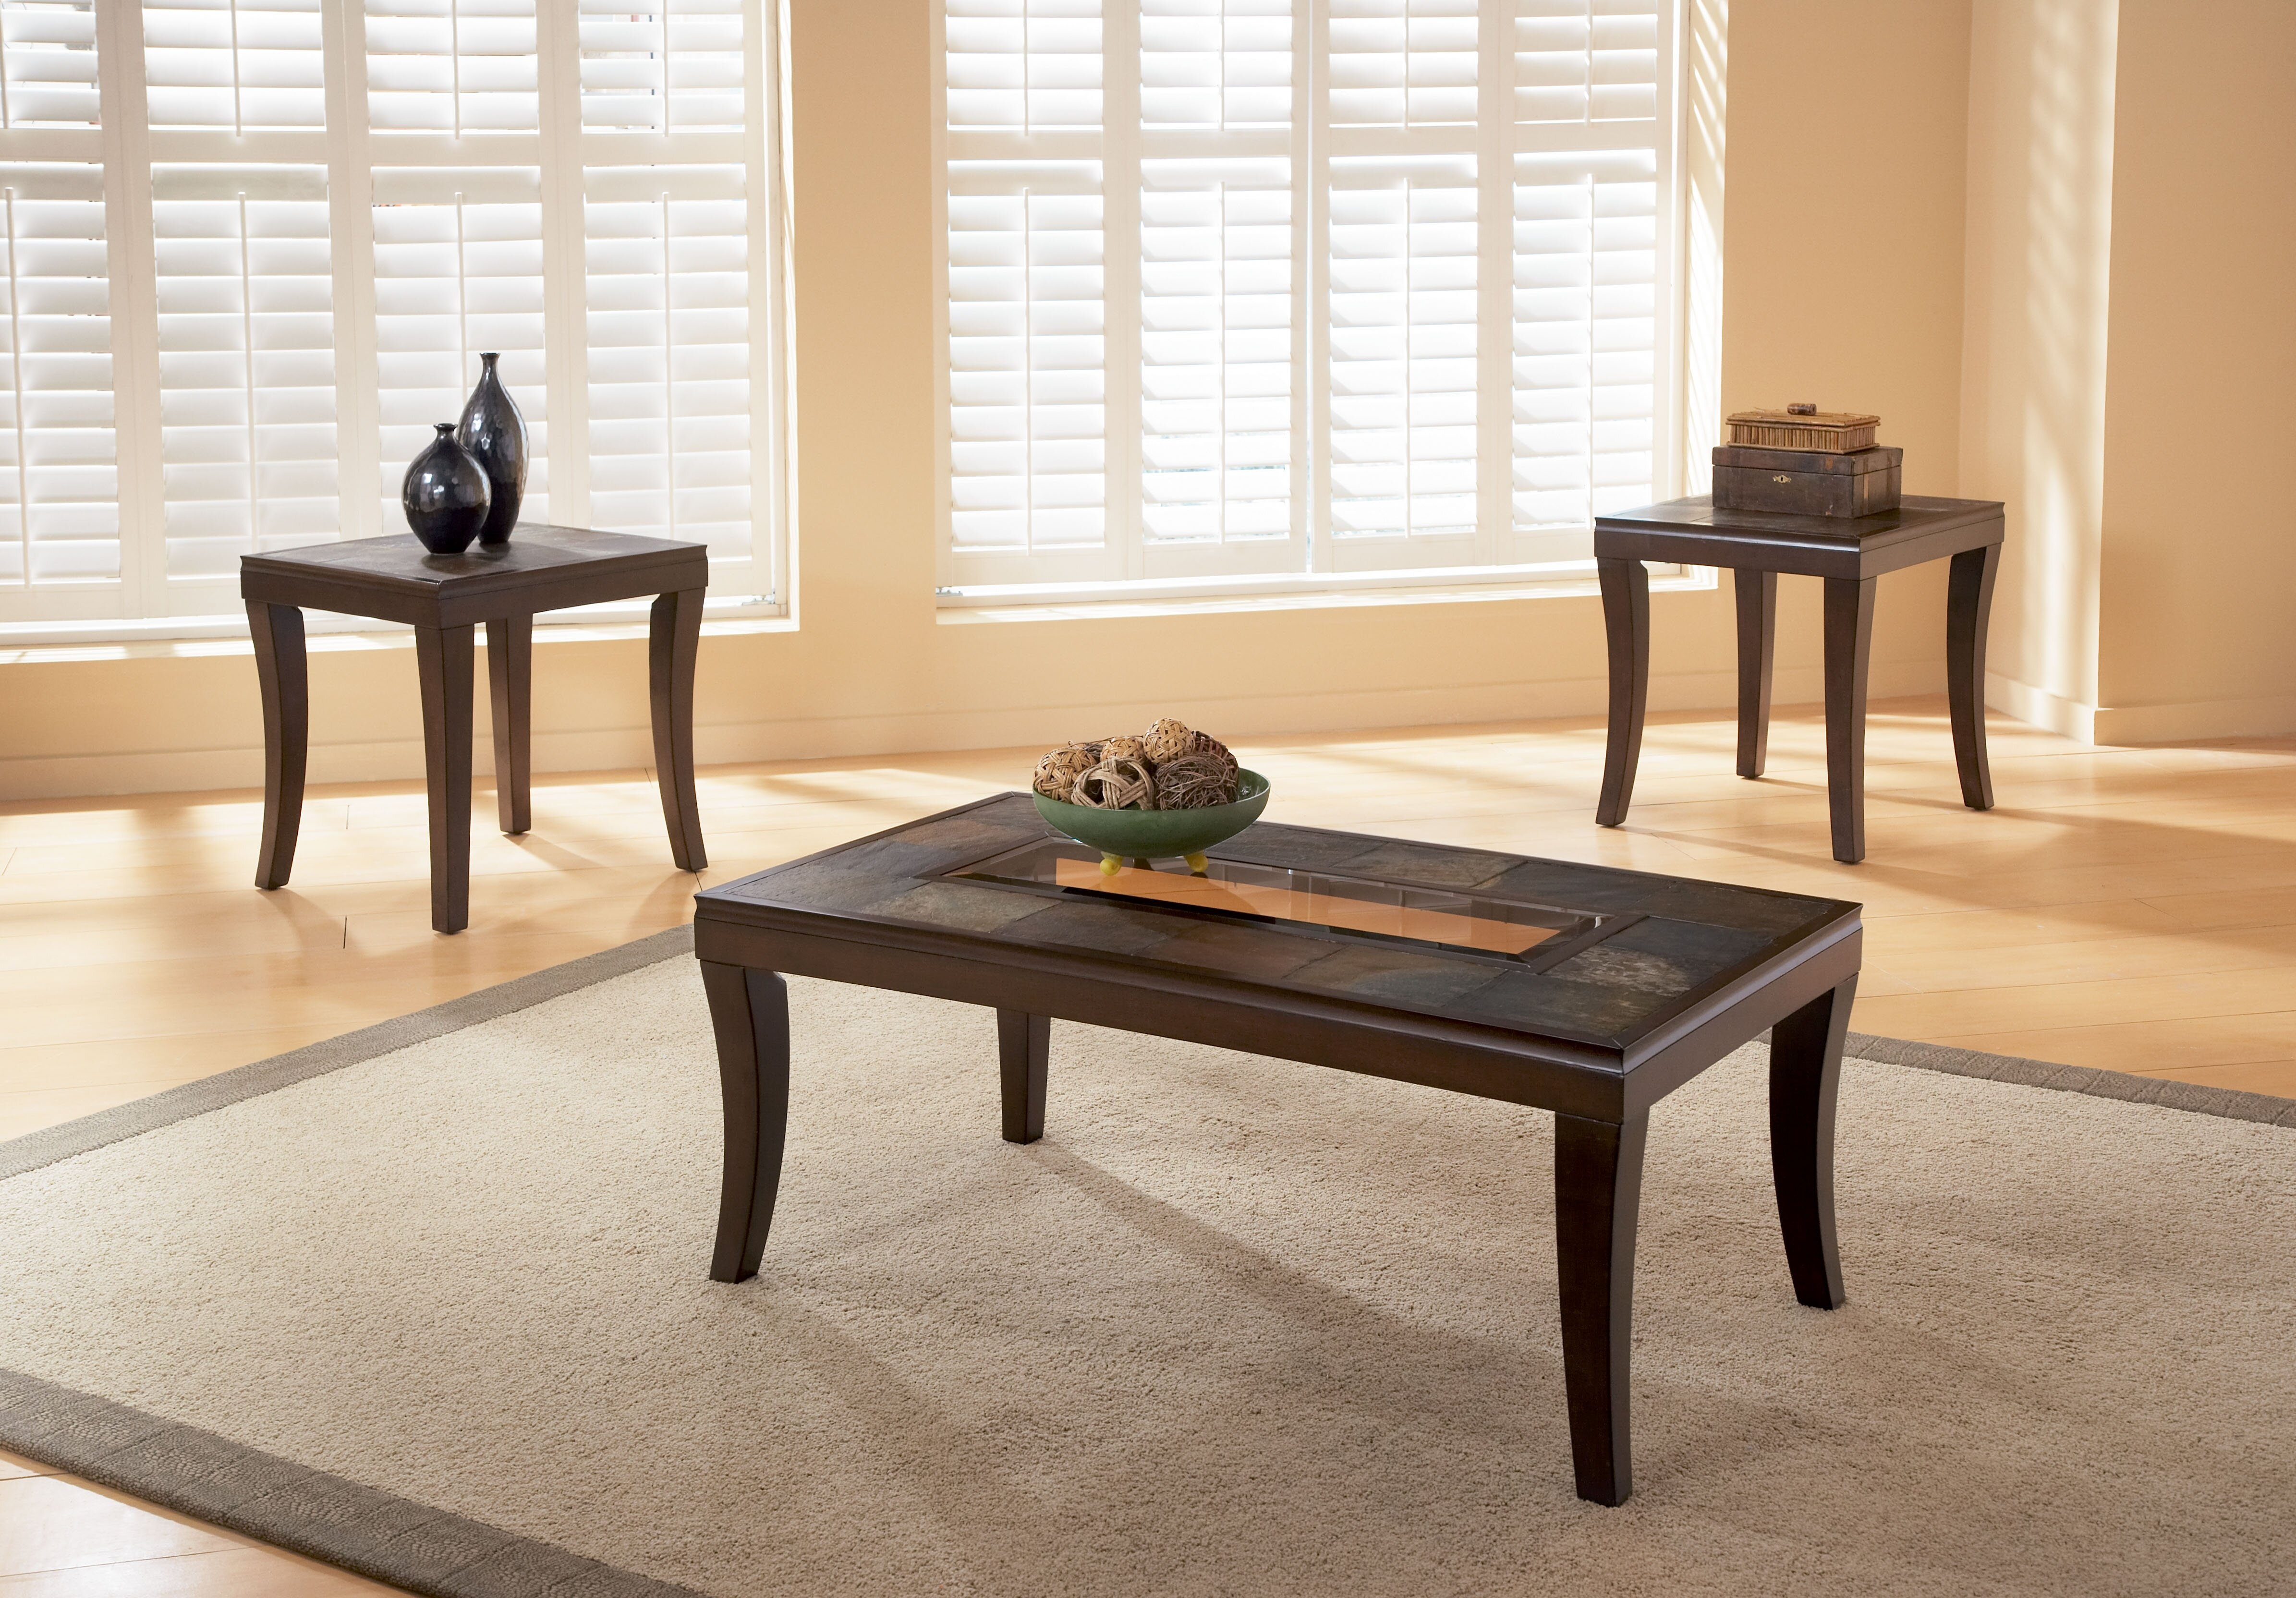 Inspirational Daily Coffee Table with Double Lift top by Darby